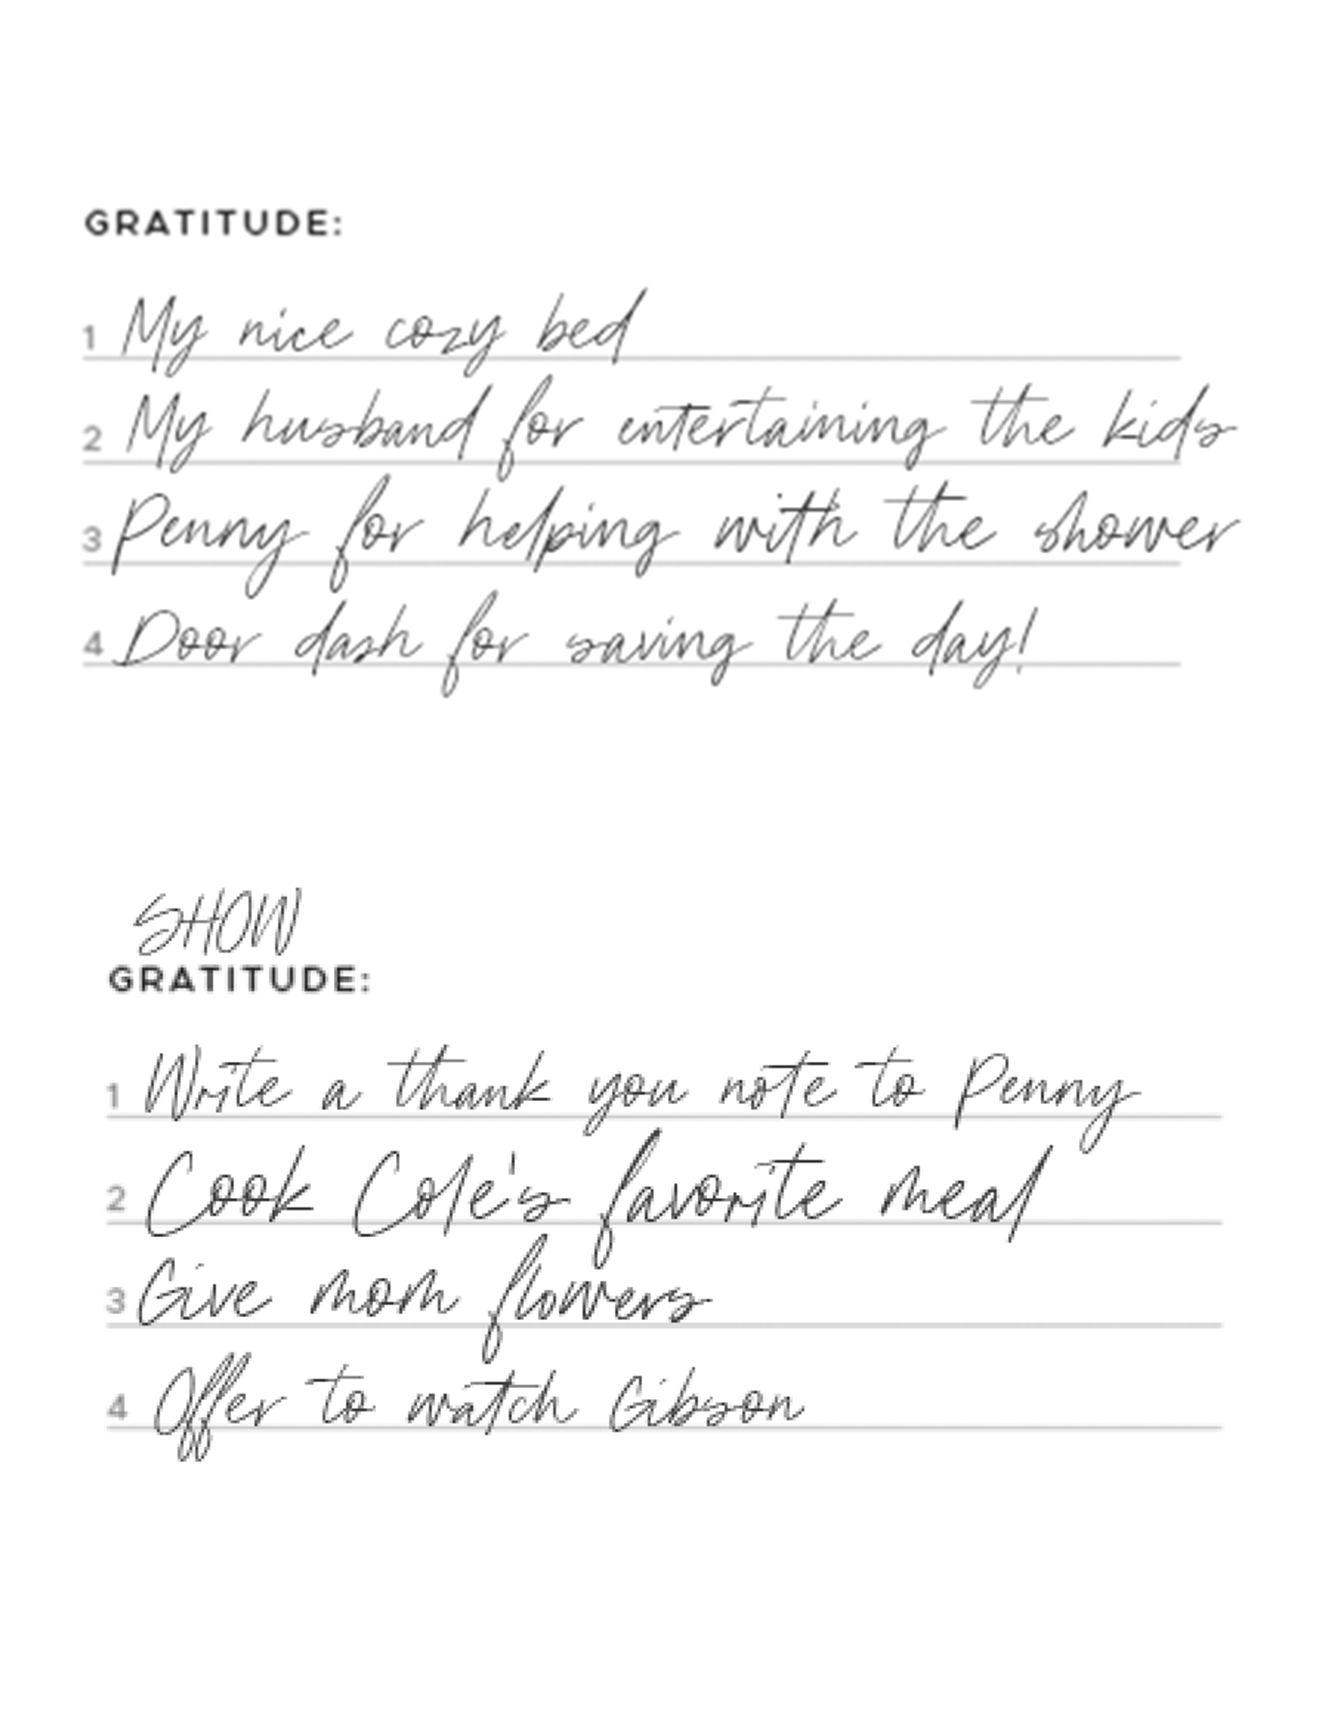 - GRATITUDE:Use this space to write down what you're grateful for OR ways you can show gratitude to others!